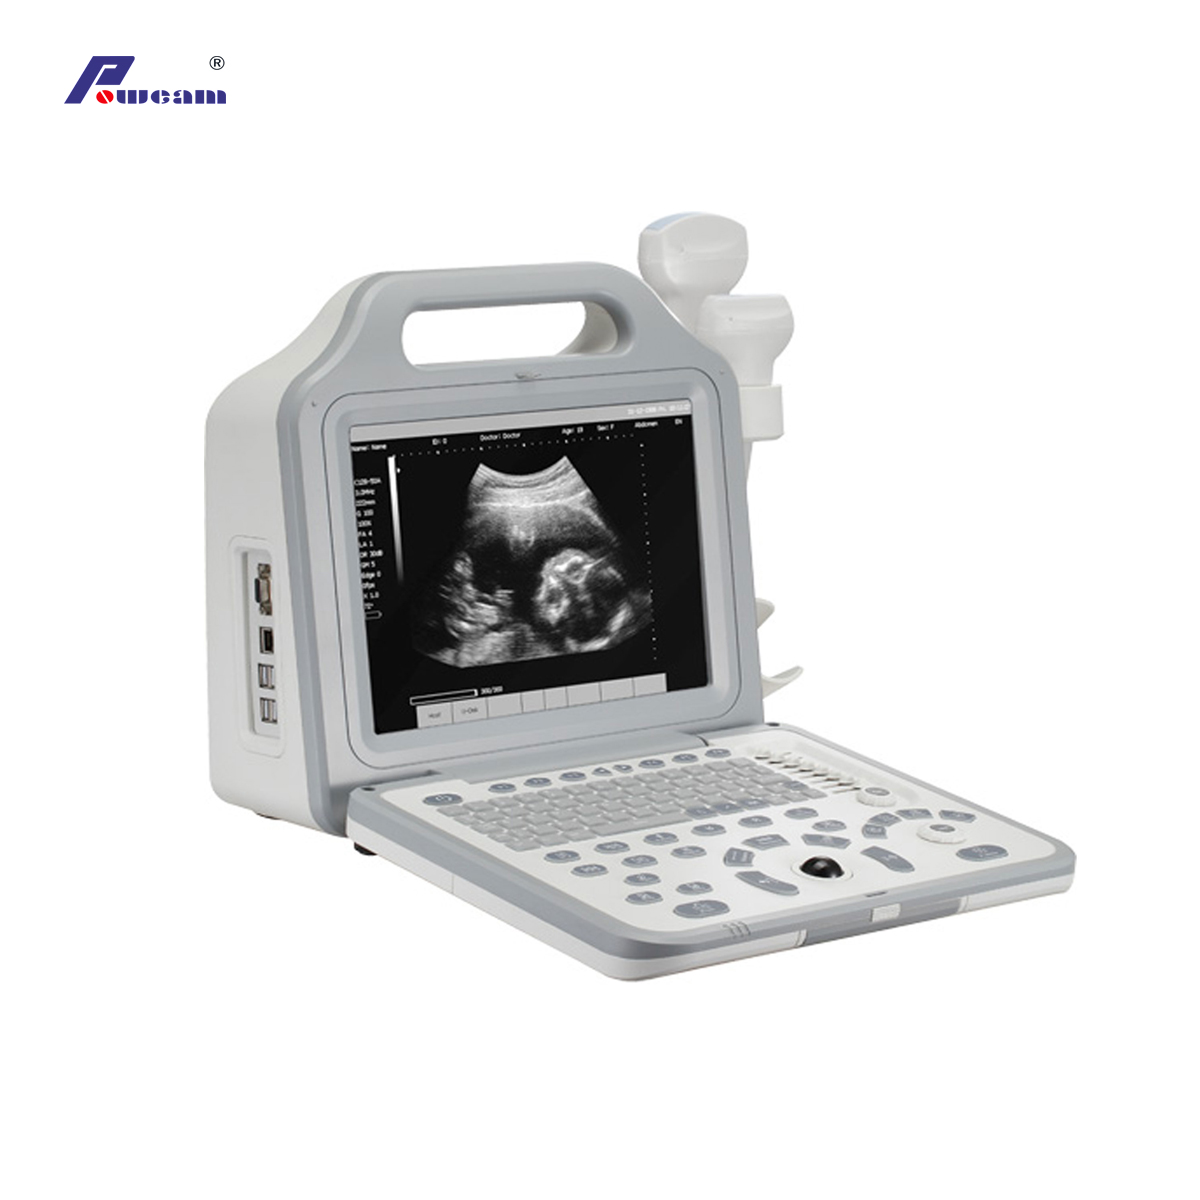 Digital Laptop Portable Ultrasound Scanner with LCD Display (WHYC50P)